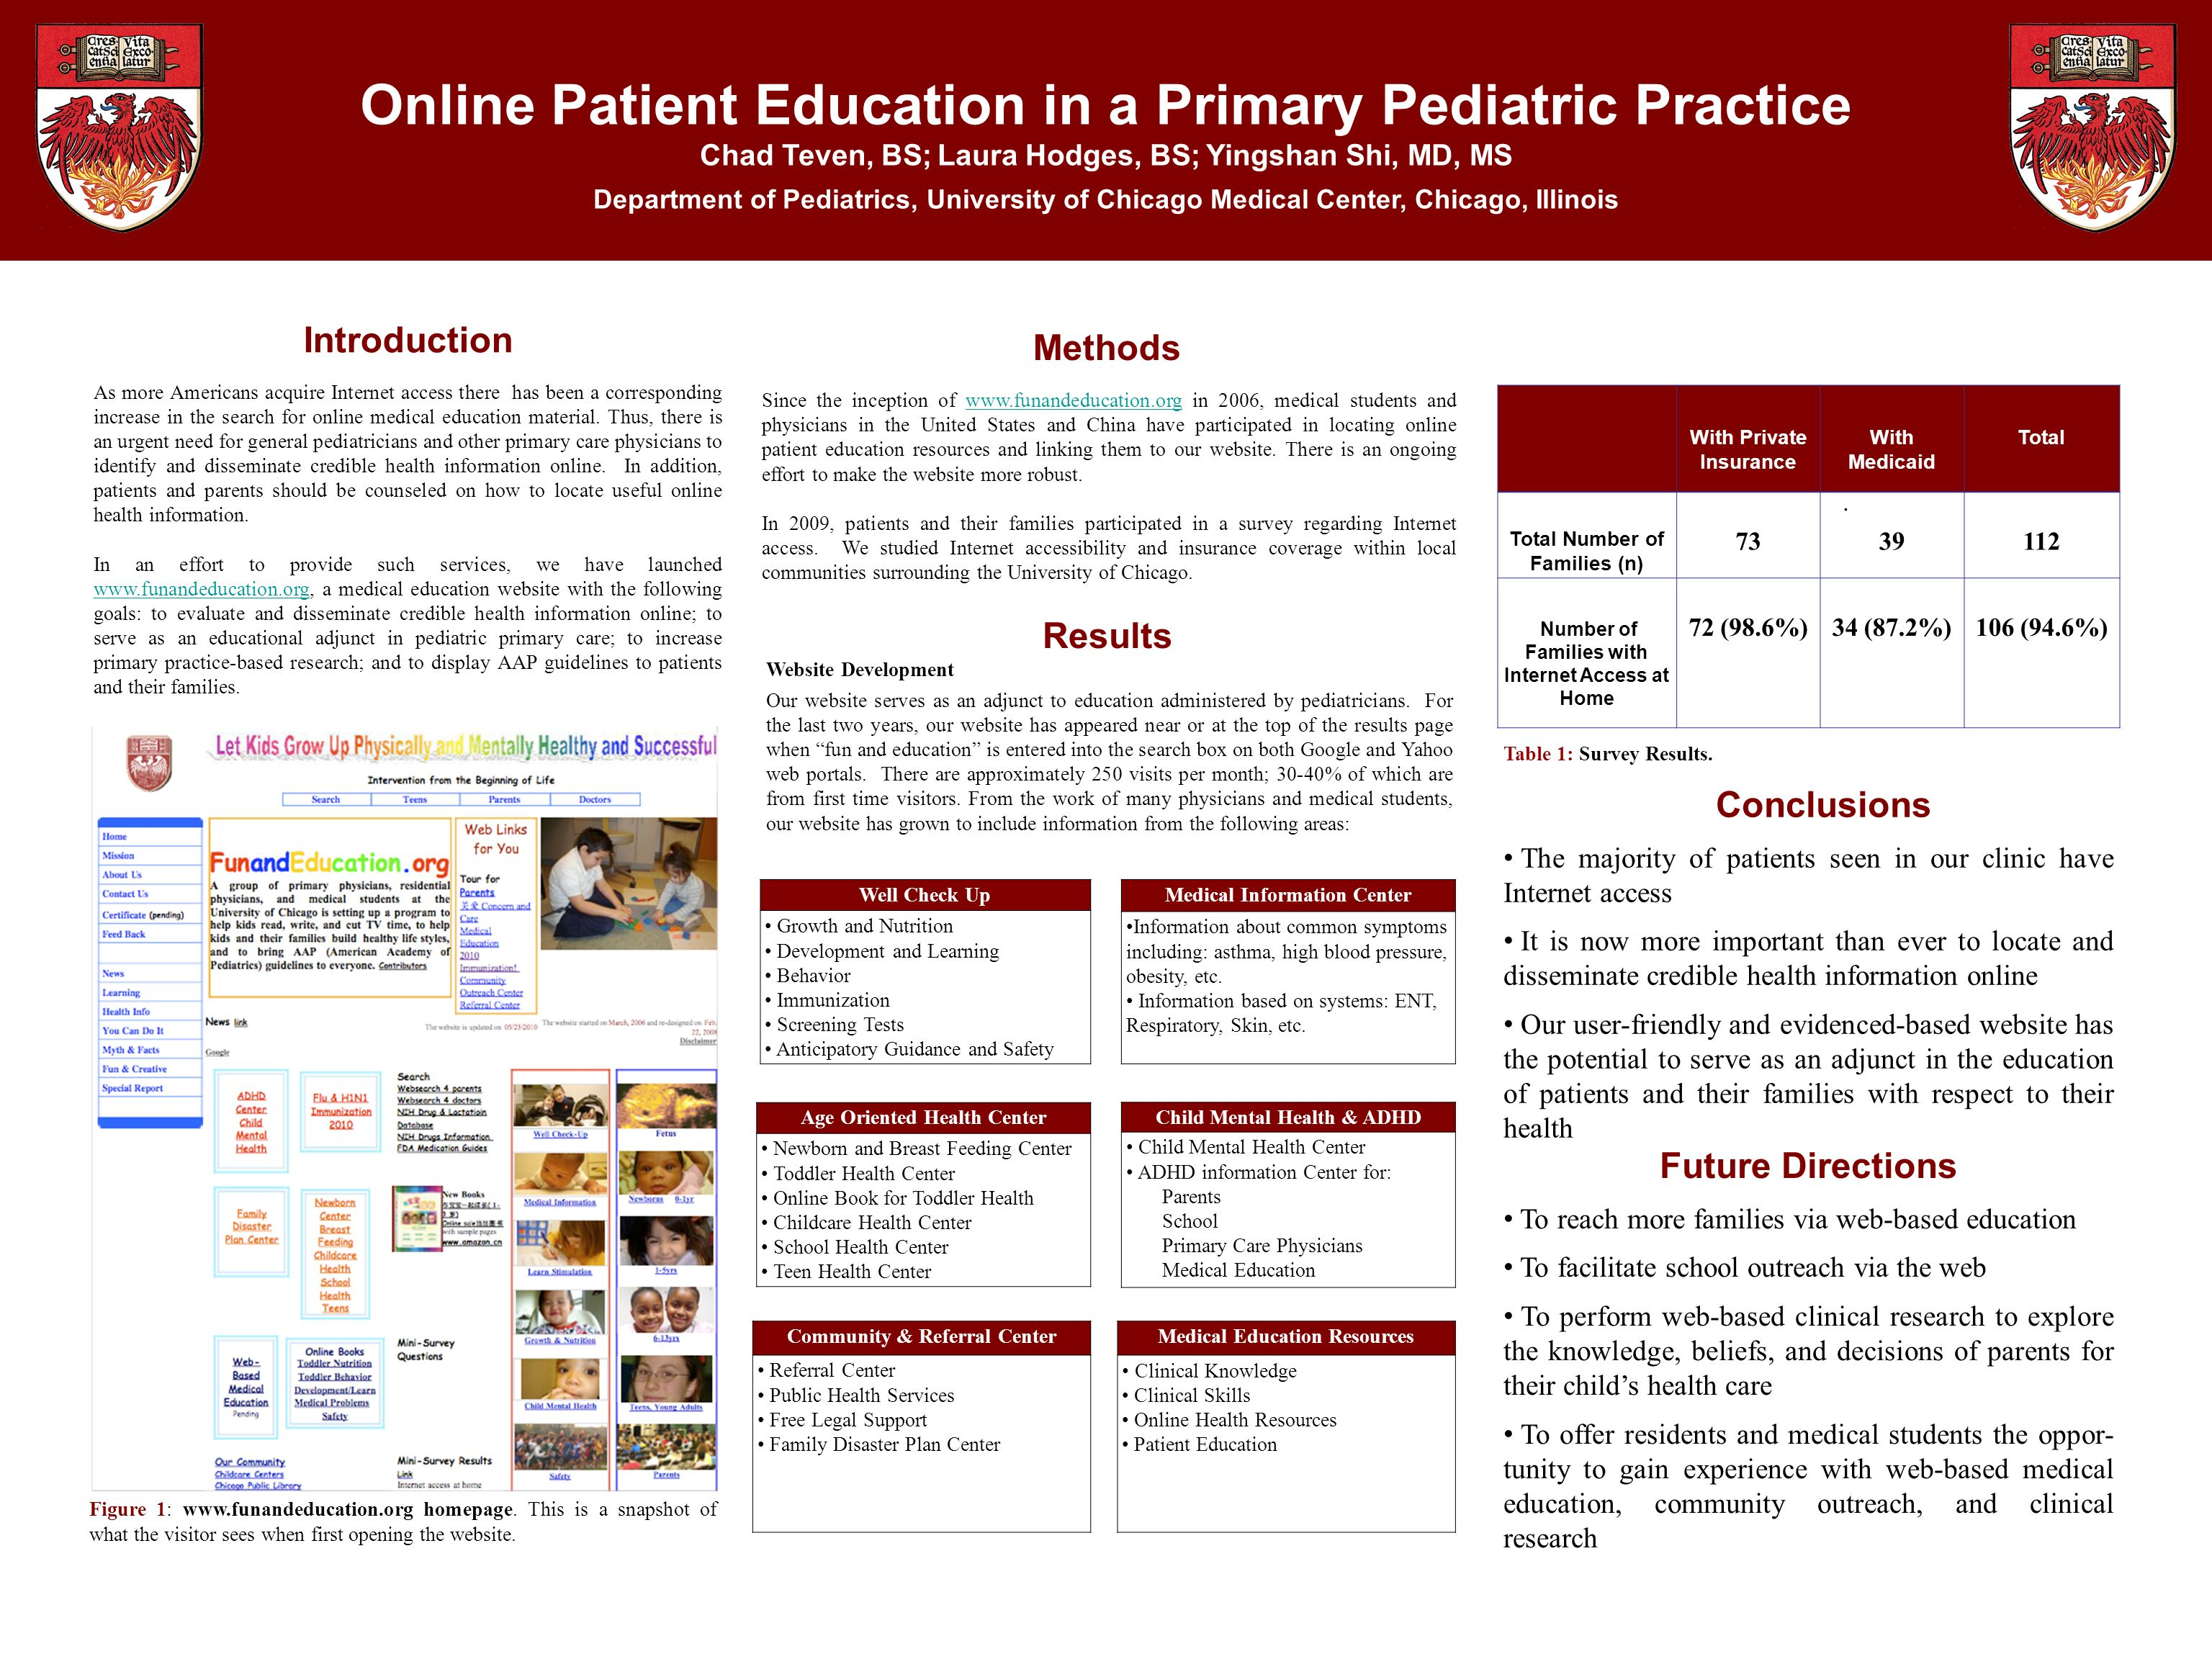 Online Patient Education in a Primary Pediatric Practice Chad Teven, BS; Laura Hodges, BS; Yingshan Shi, MD, MS Department of Pediatrics, University of Chicago Medical Center, Chicago, Illinois Methods Since the inception of www.funandeducation.org in 2006, medical students and physicians in the United States and China have participated in locating online patient education resources and linking them to our website.